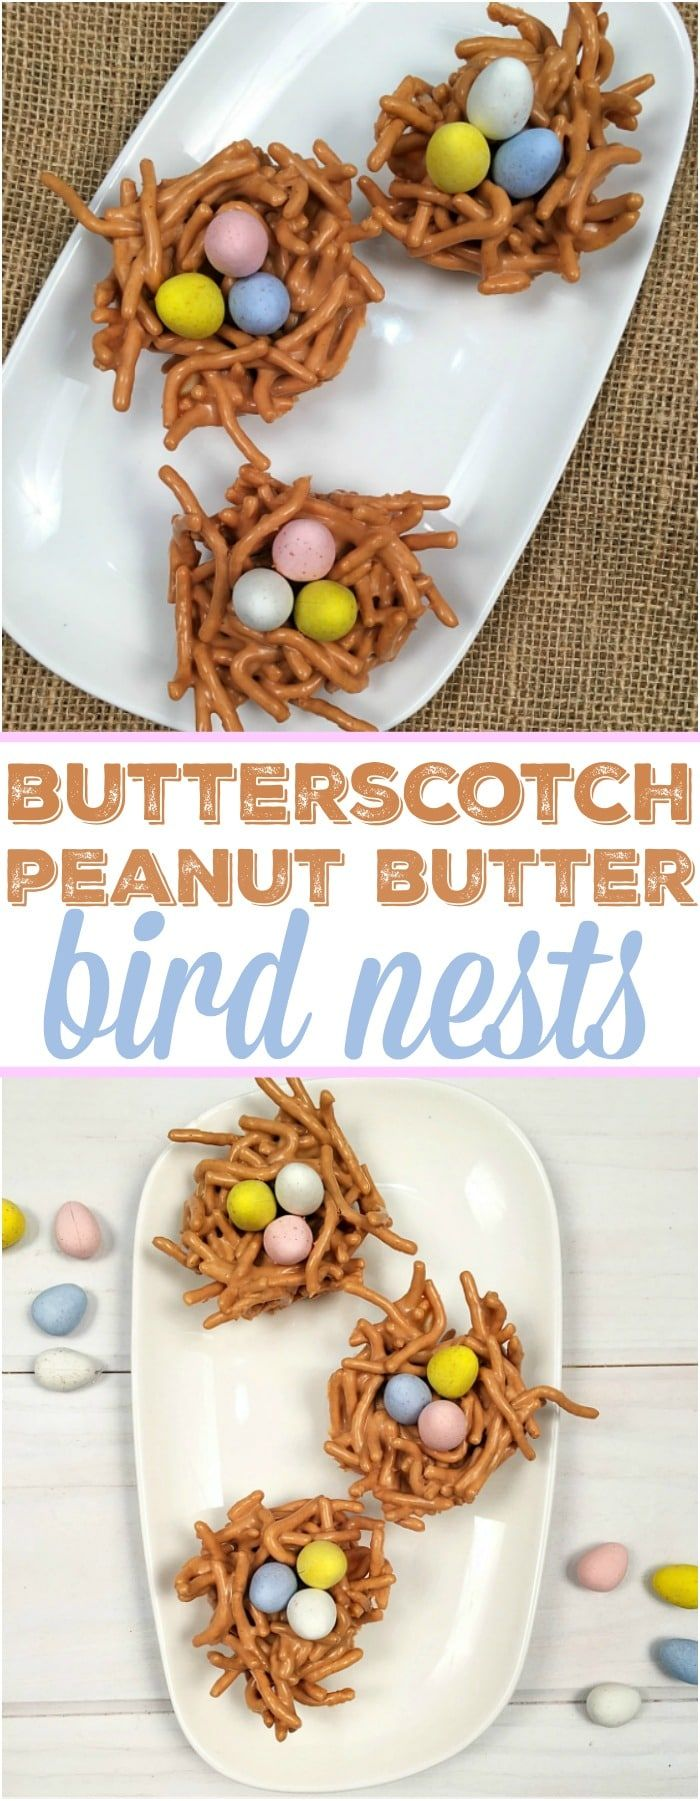 These easy butterscotch haystacks desserts are perfect Easter nests and so yummy too. A crunchy and creamy peanut butter treat with chocolate eggs in the shape of a bird nest they are a no bake dessert kids can help you make with a delicious butterscotch flavor.  #butterscotch #haystacks #nests #easter #dessert #easy #cute #eggs #chocolate #peanutbutter #nobake via @thetypicalmom